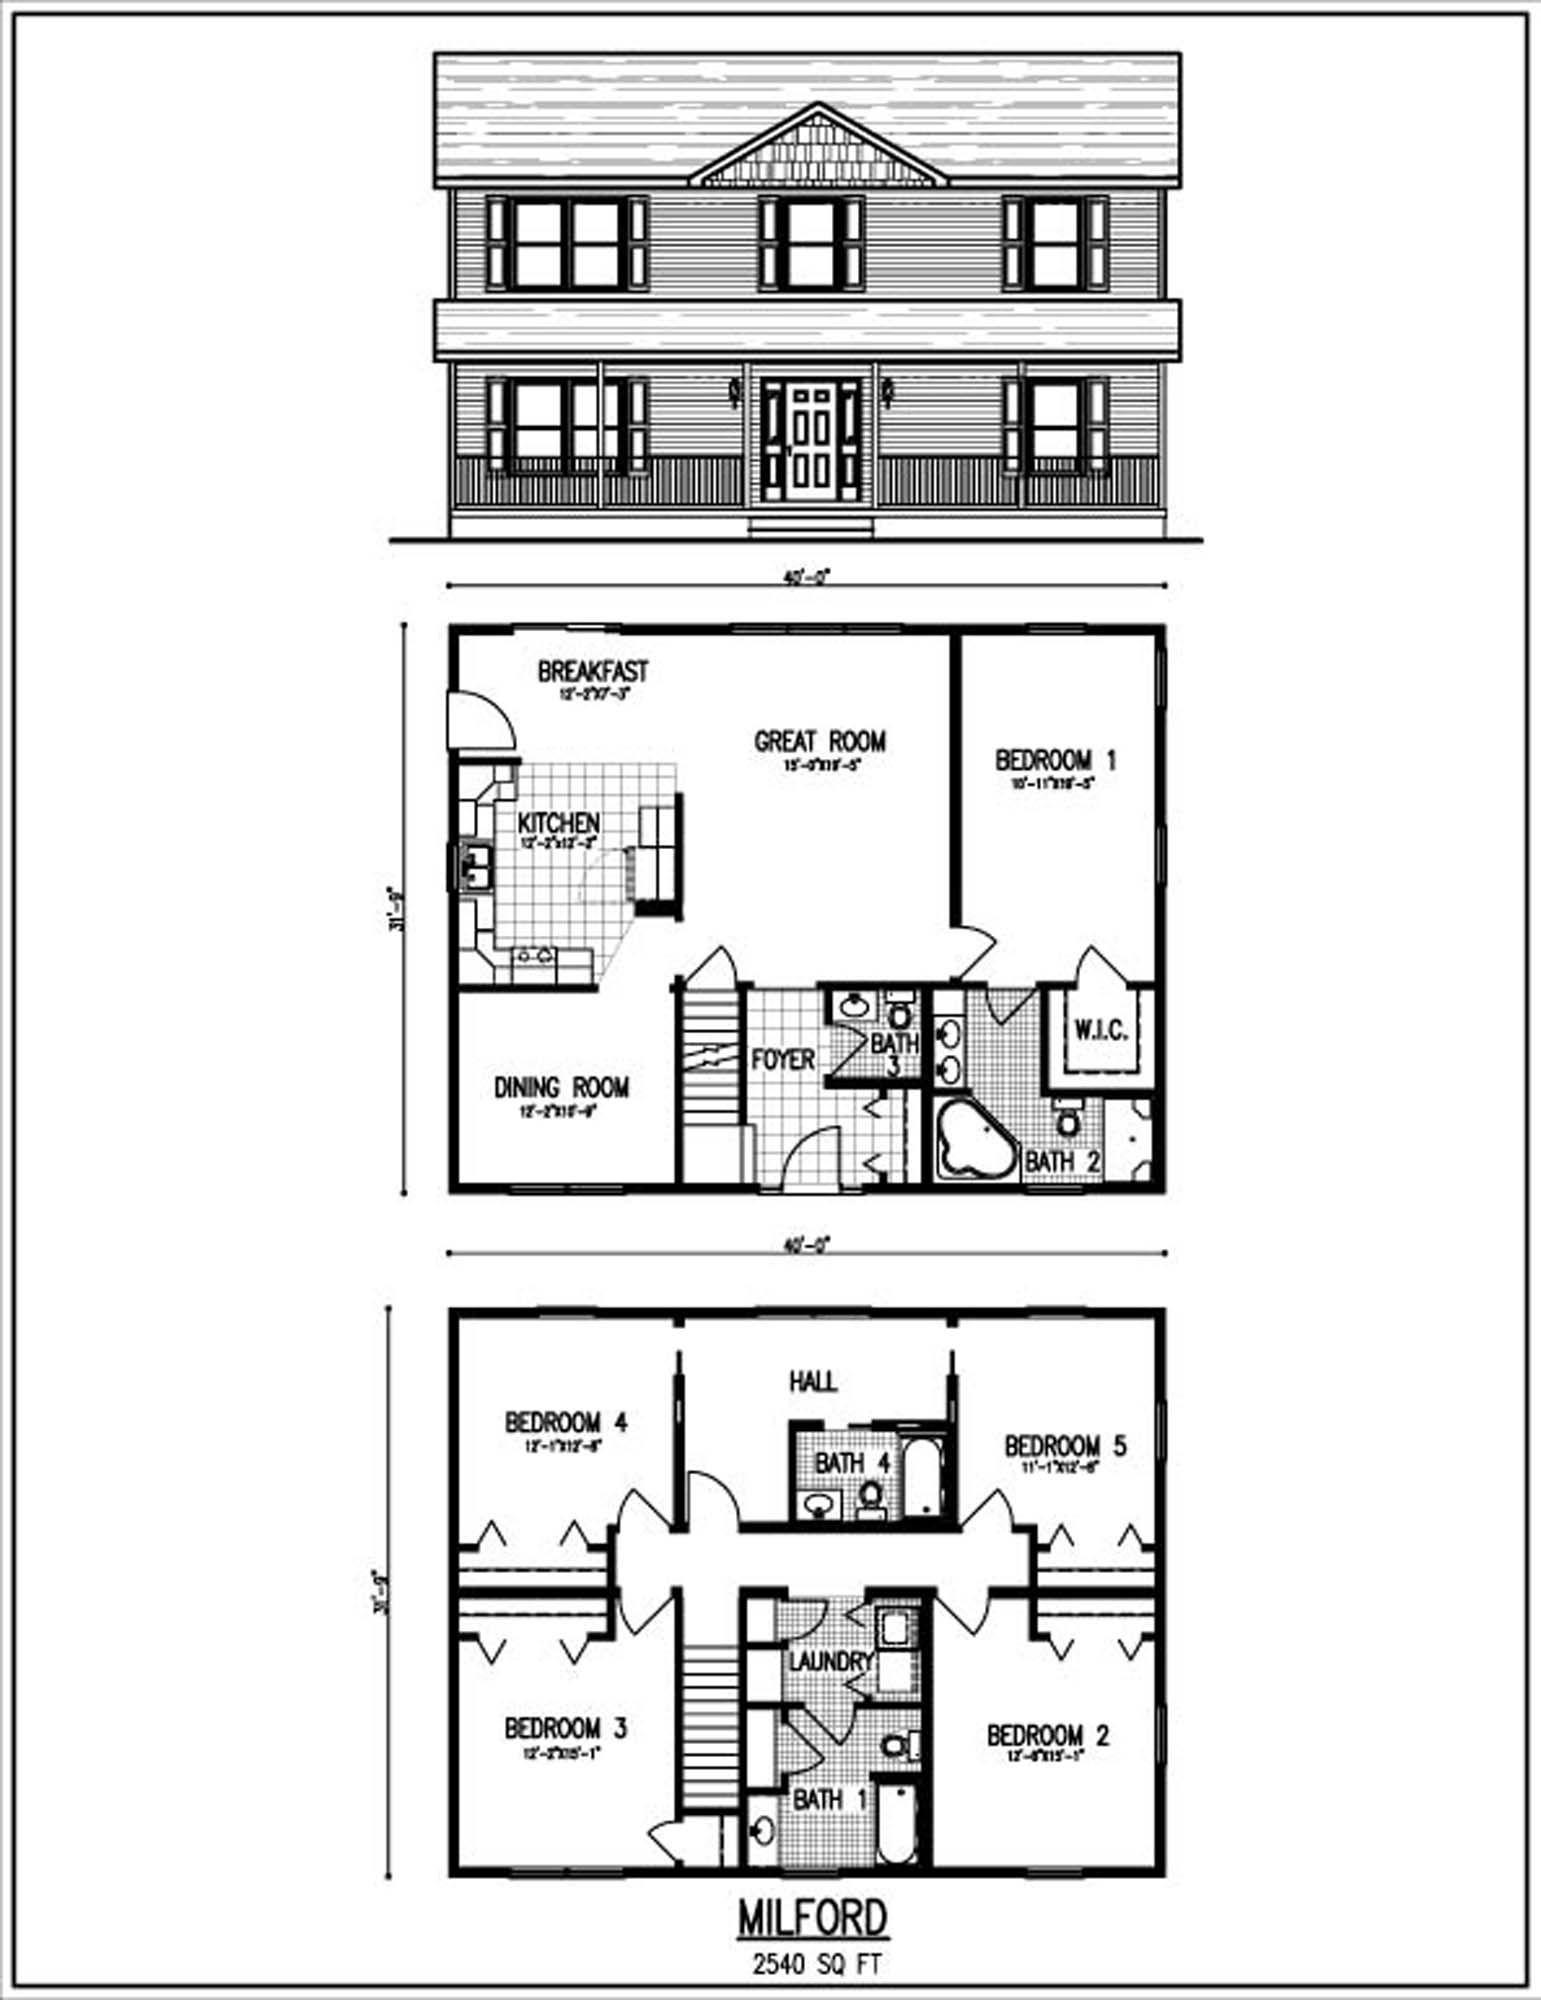 Thompson Hill Homes Inc Floor Plans Two Home Pinterest - House plans 2 story